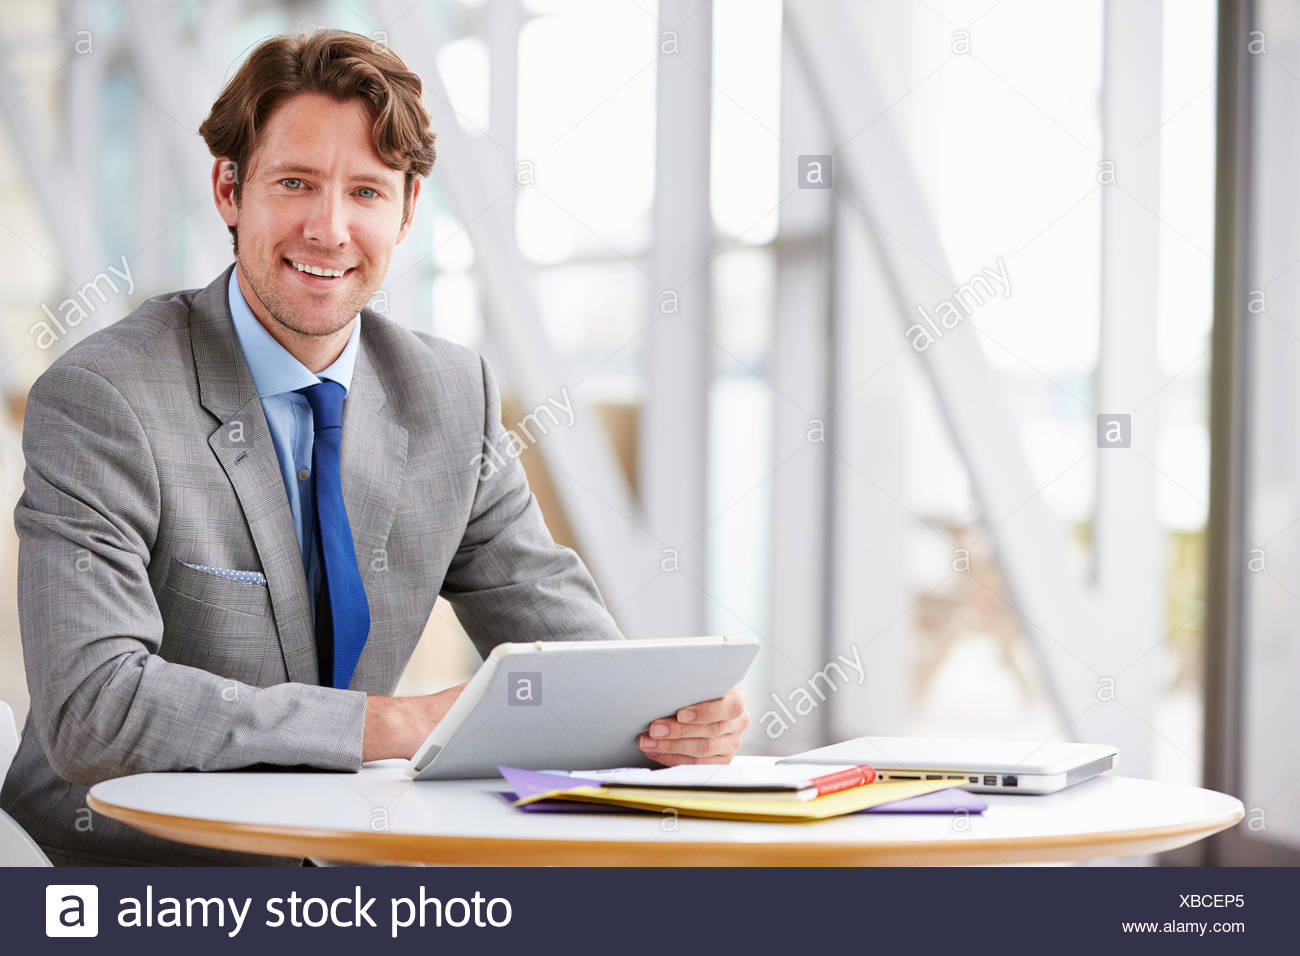 Corporate businessman working with tablet computer Photo Stock